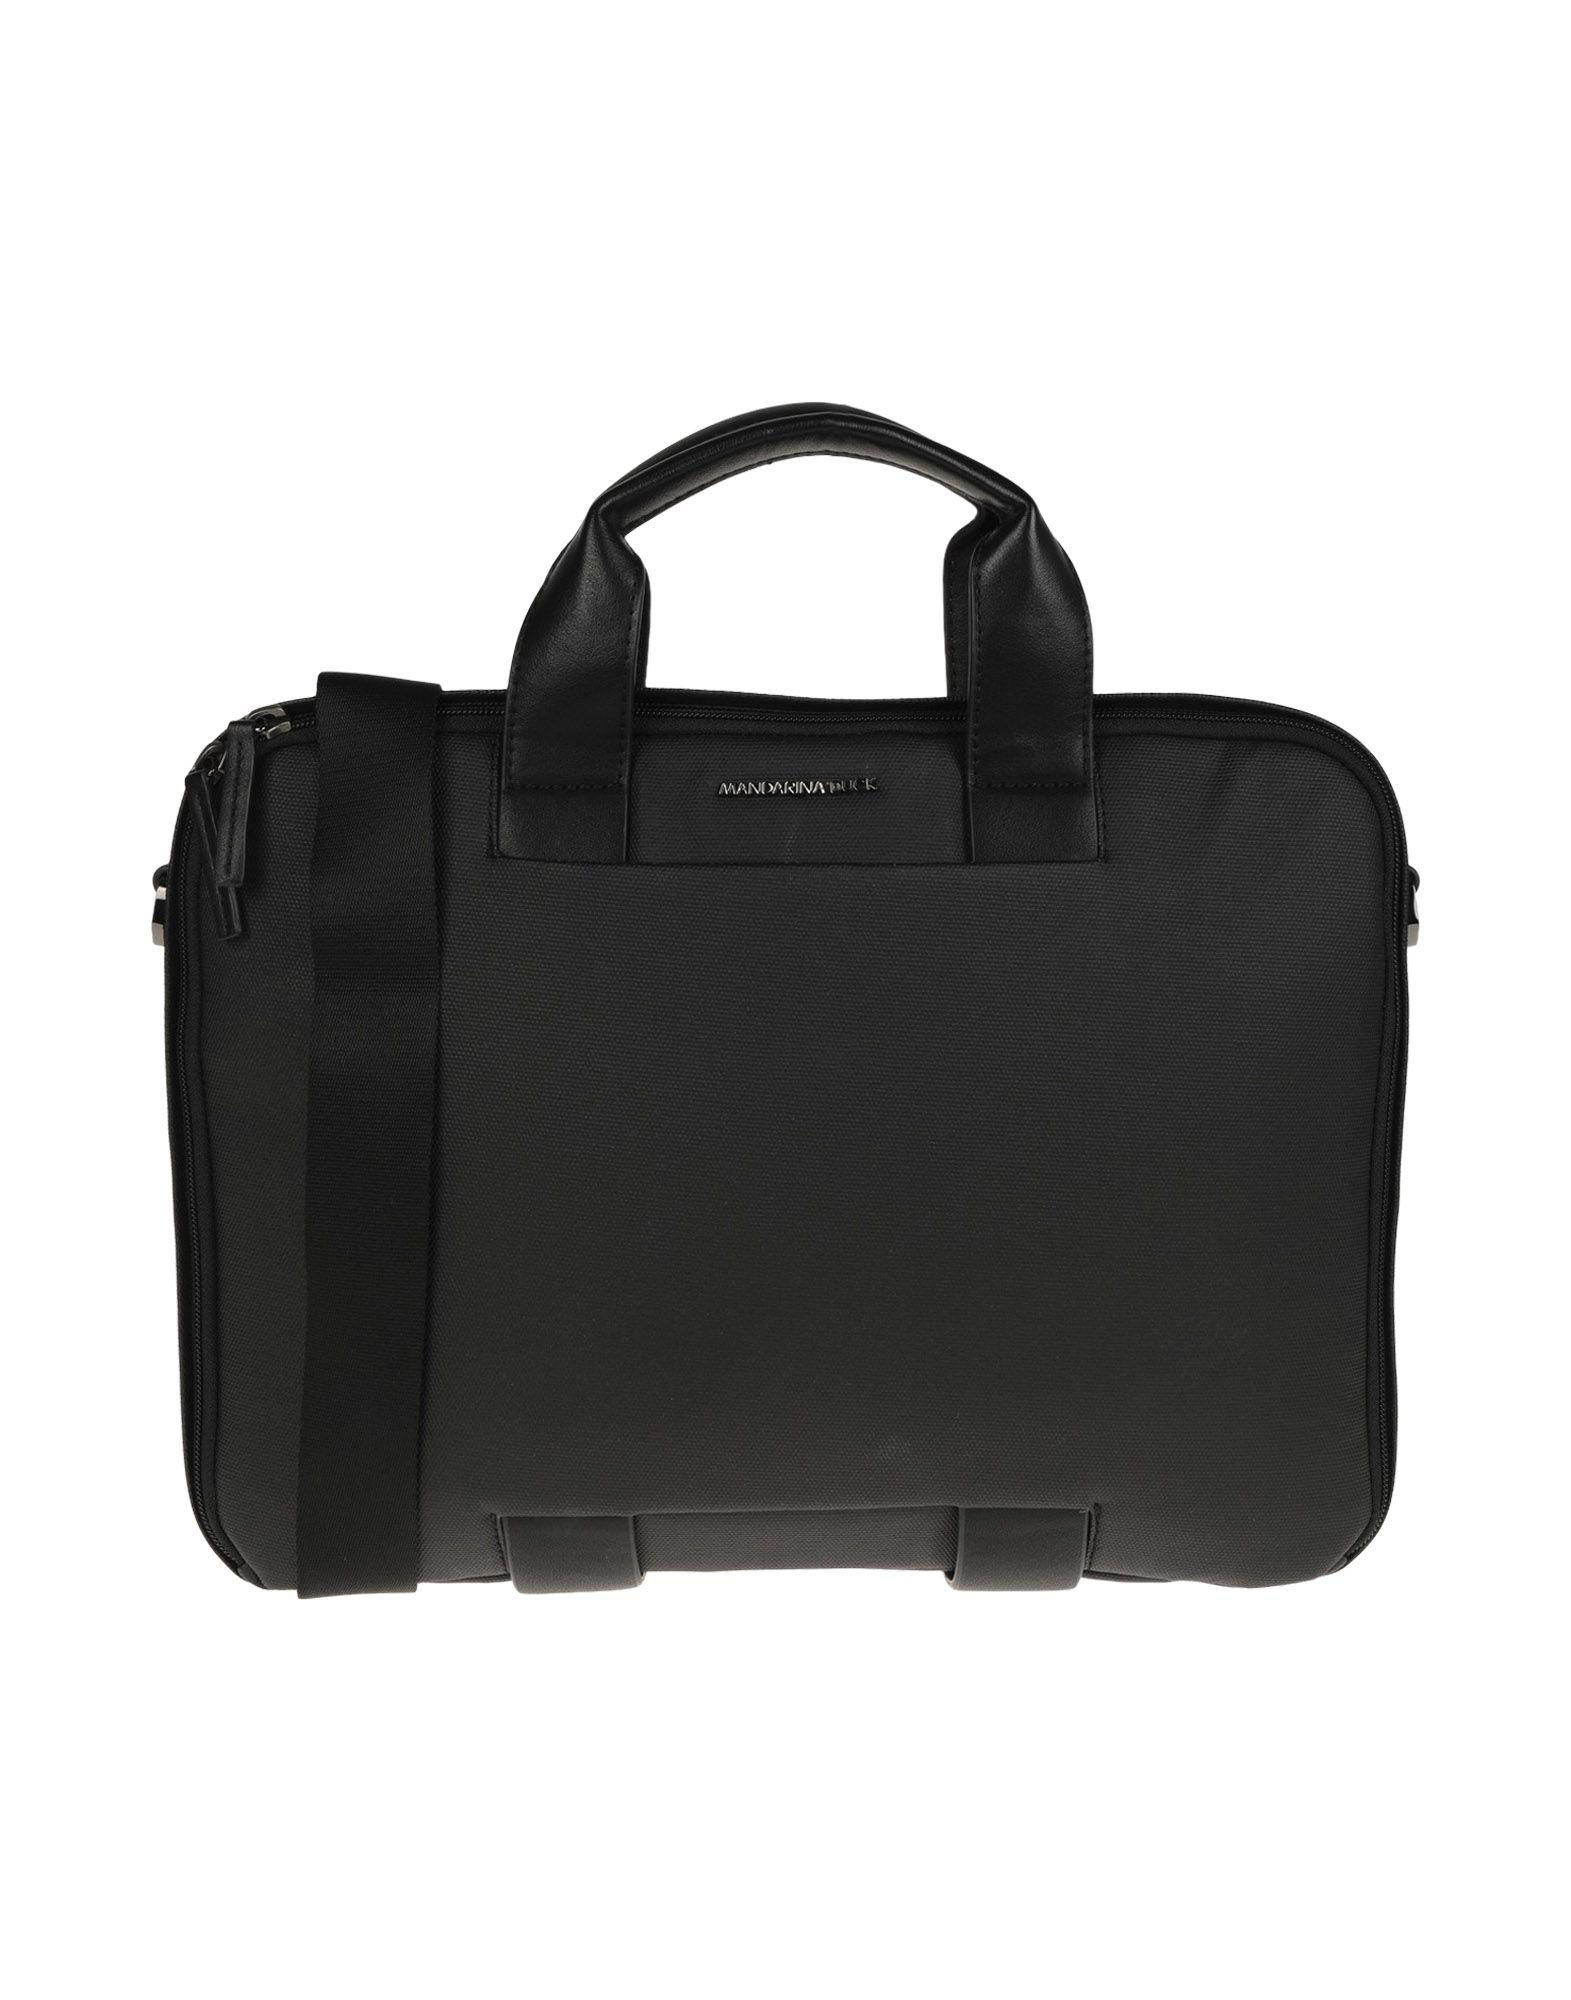 355f6fa83a5b Lyst - Mandarina Duck Work Bags in Black for Men